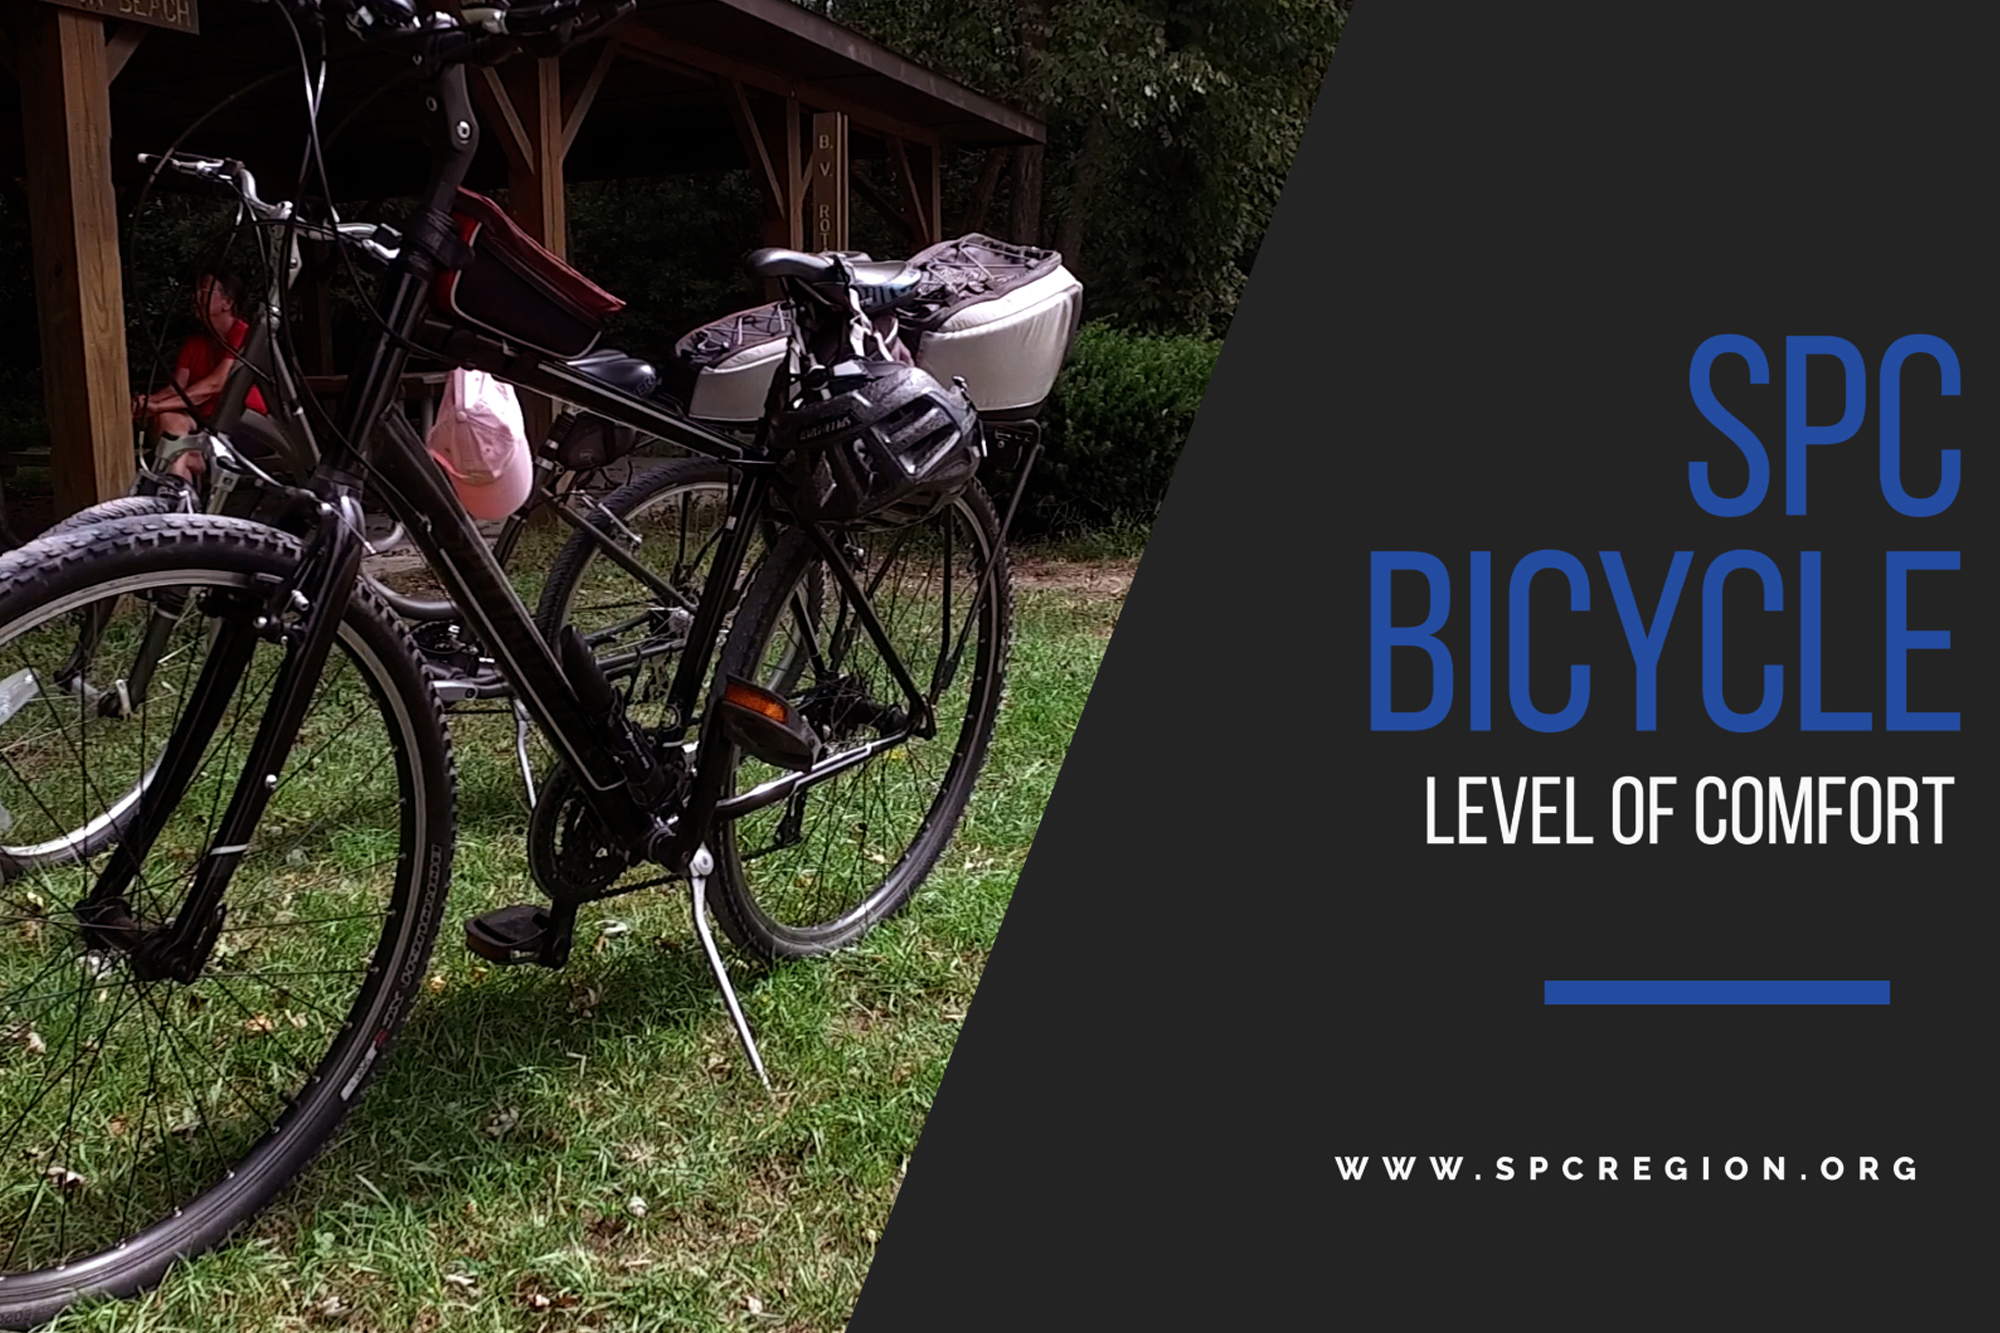 Title Screen of a Bicycle Level of Comfort Video